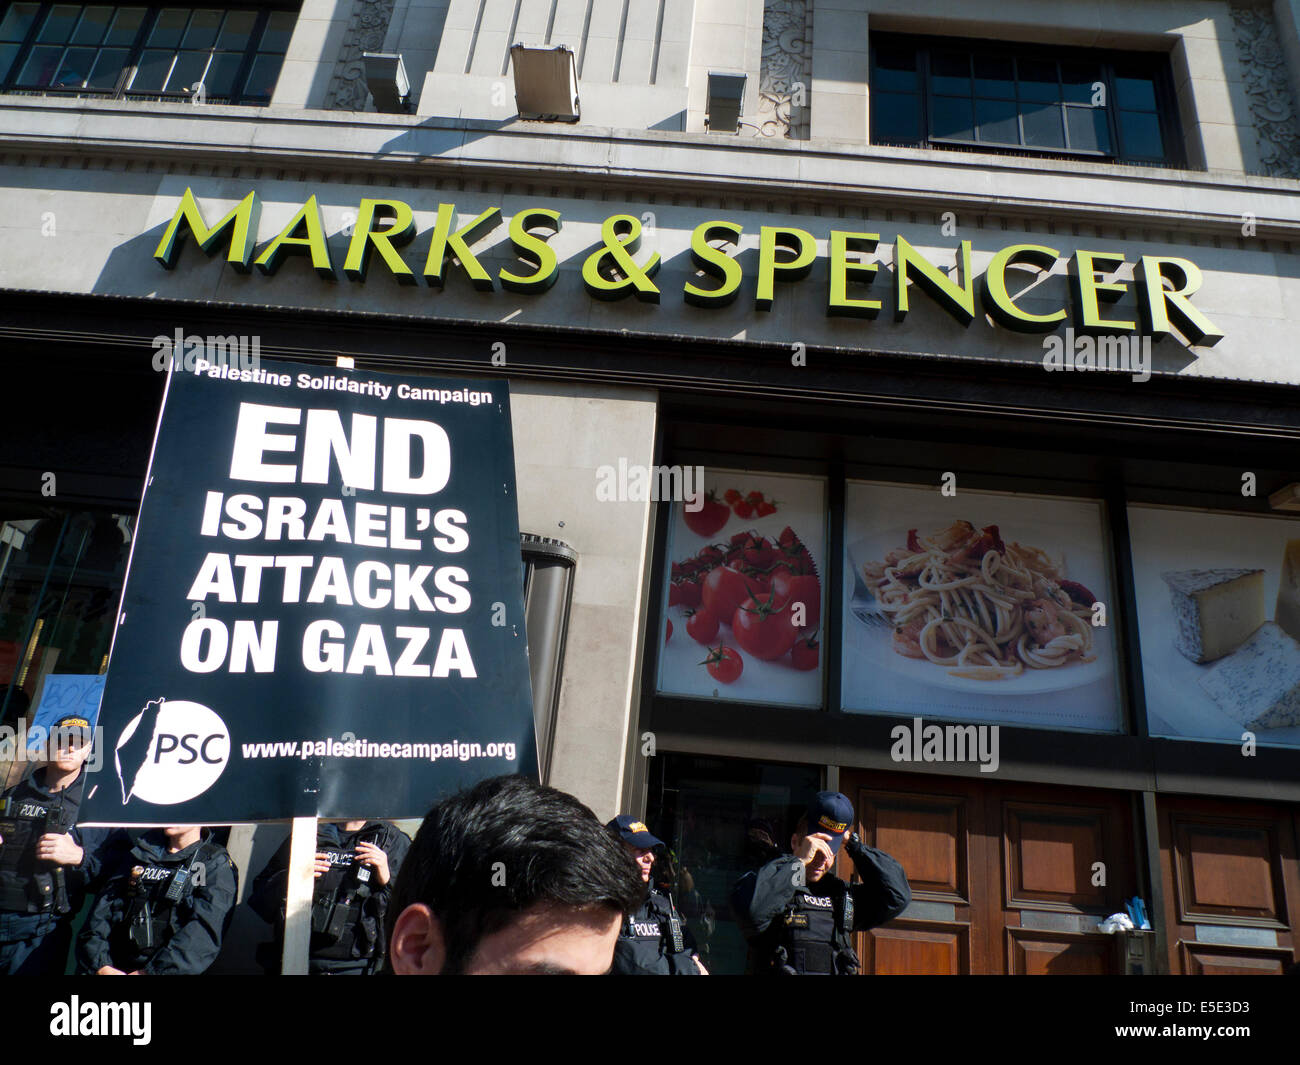 People demonstrating outsie M&S store against killing bombing of Gaza Palestinians by Israel  London UK 19.7.2014 - Stock Image